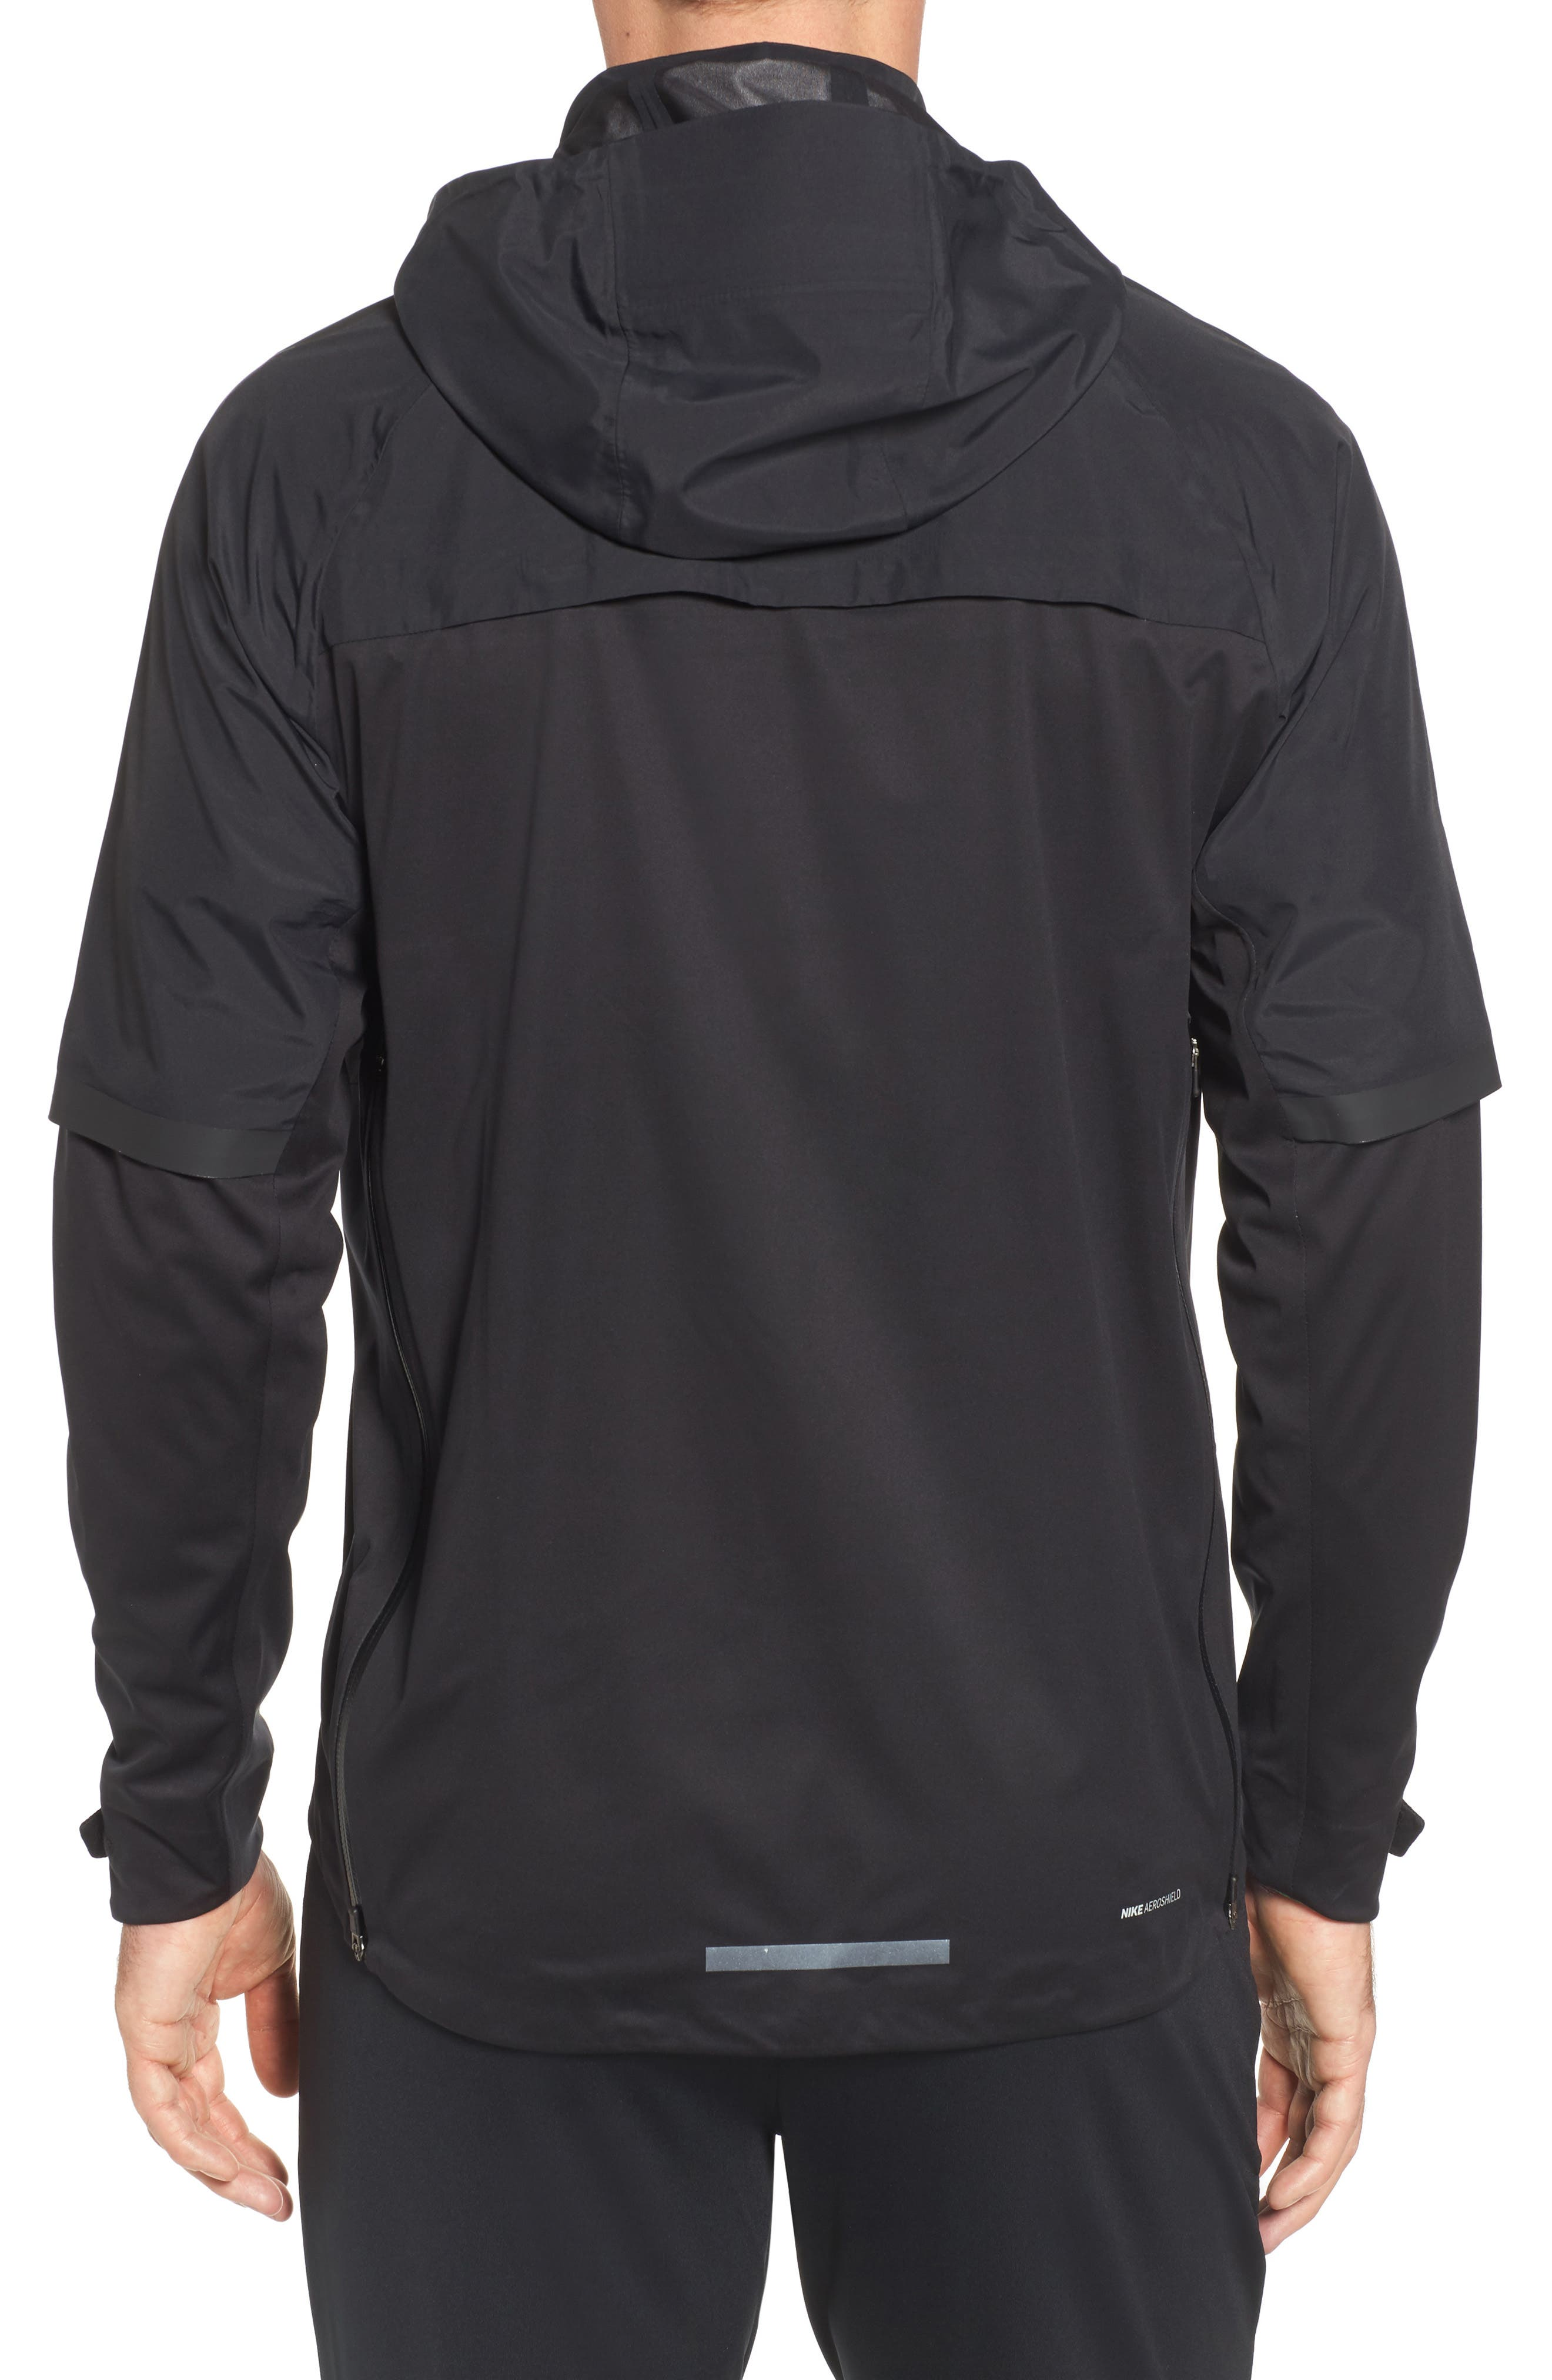 AeroShield Running Jacket,                             Alternate thumbnail 2, color,                             010